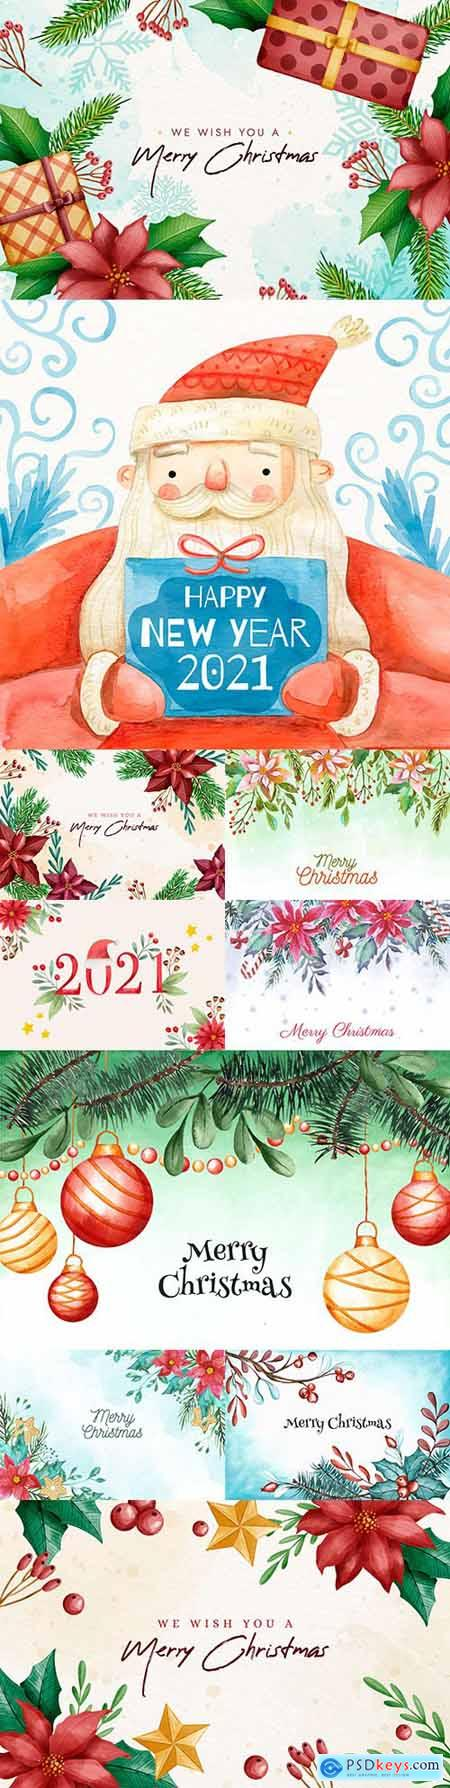 Merry Christmas watercolor New Year background